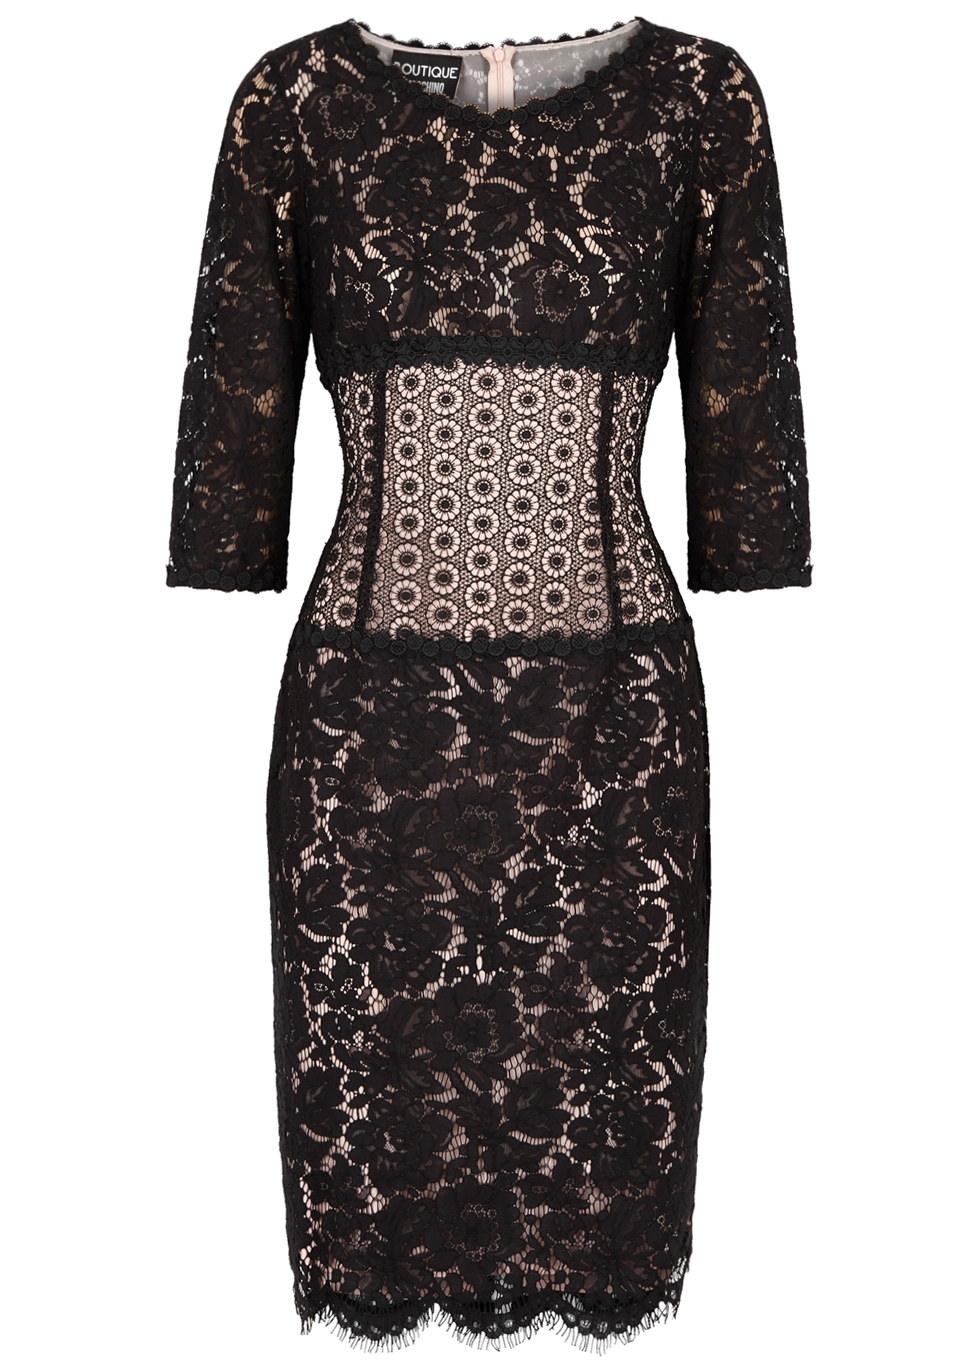 BOUTIQUE MOSCHINO BLACK PANELLED LACE DRESS